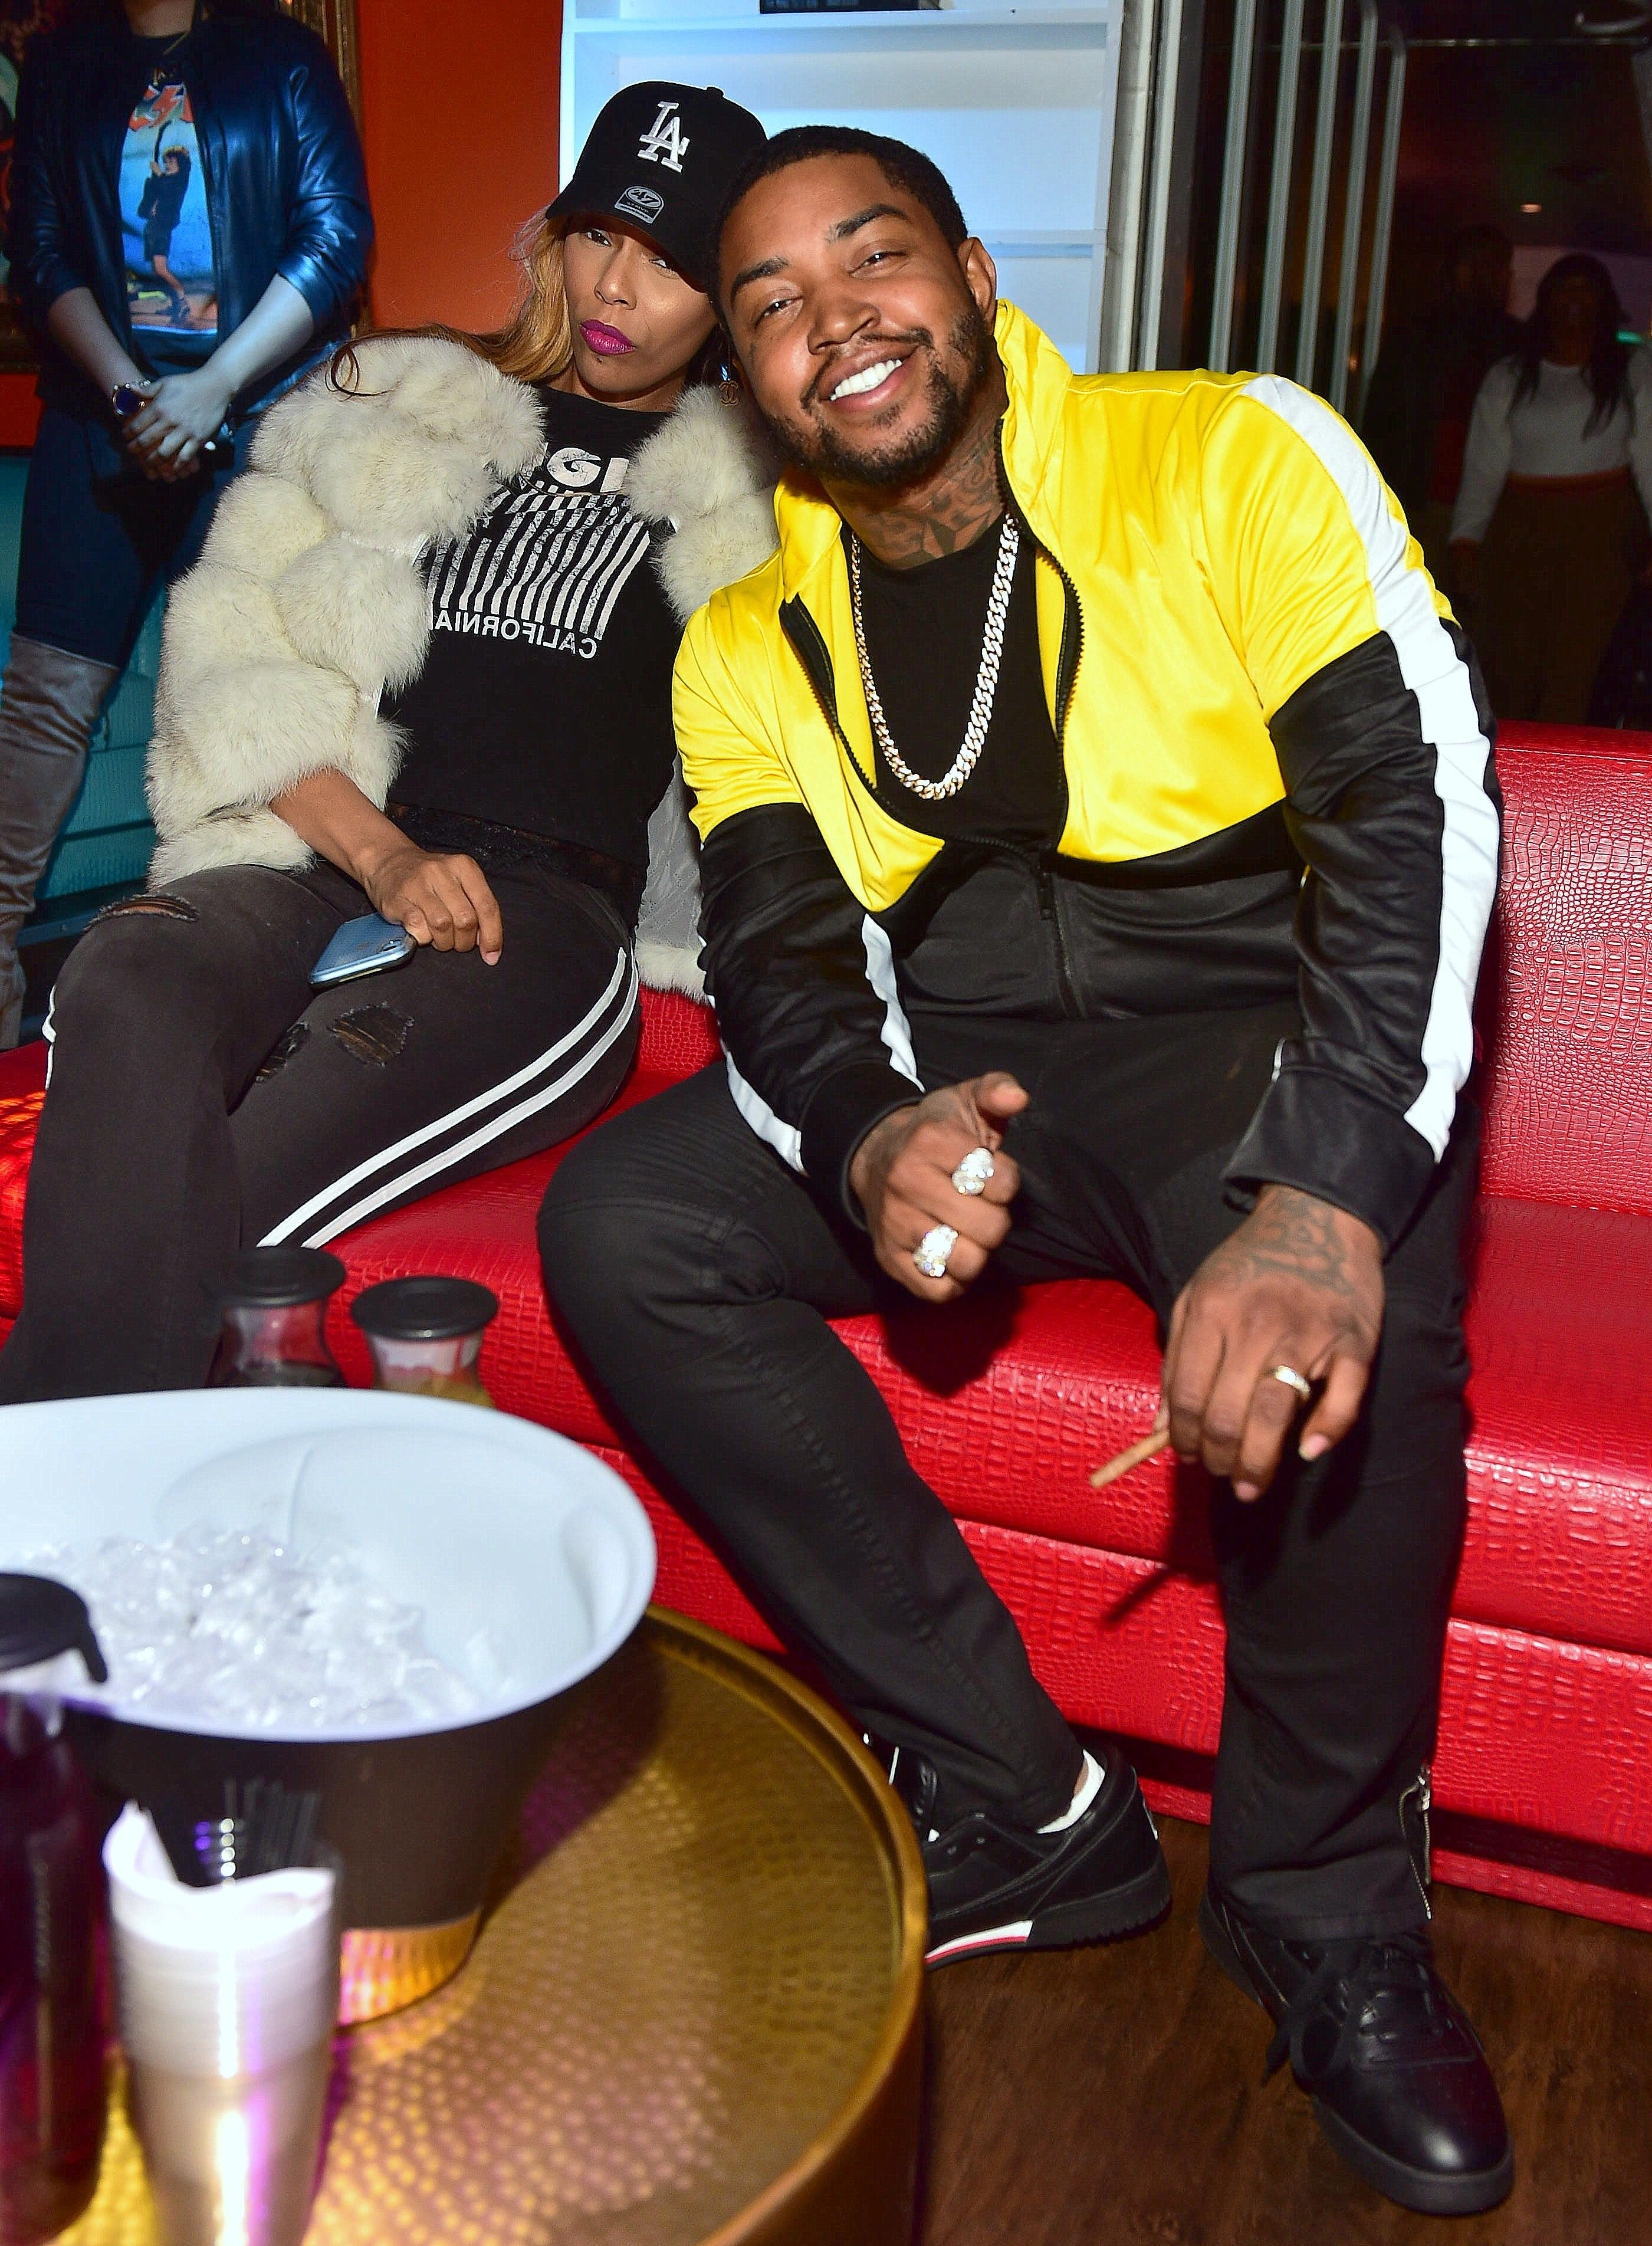 Adiz 'Bambi' Benson and Lil Scrappy attend Bambi Birthday Affair Hosted by Lil Scrappy at Oak Atlanta on March 7, 2019 in Atlanta, Georgia. | Source: Getty Images